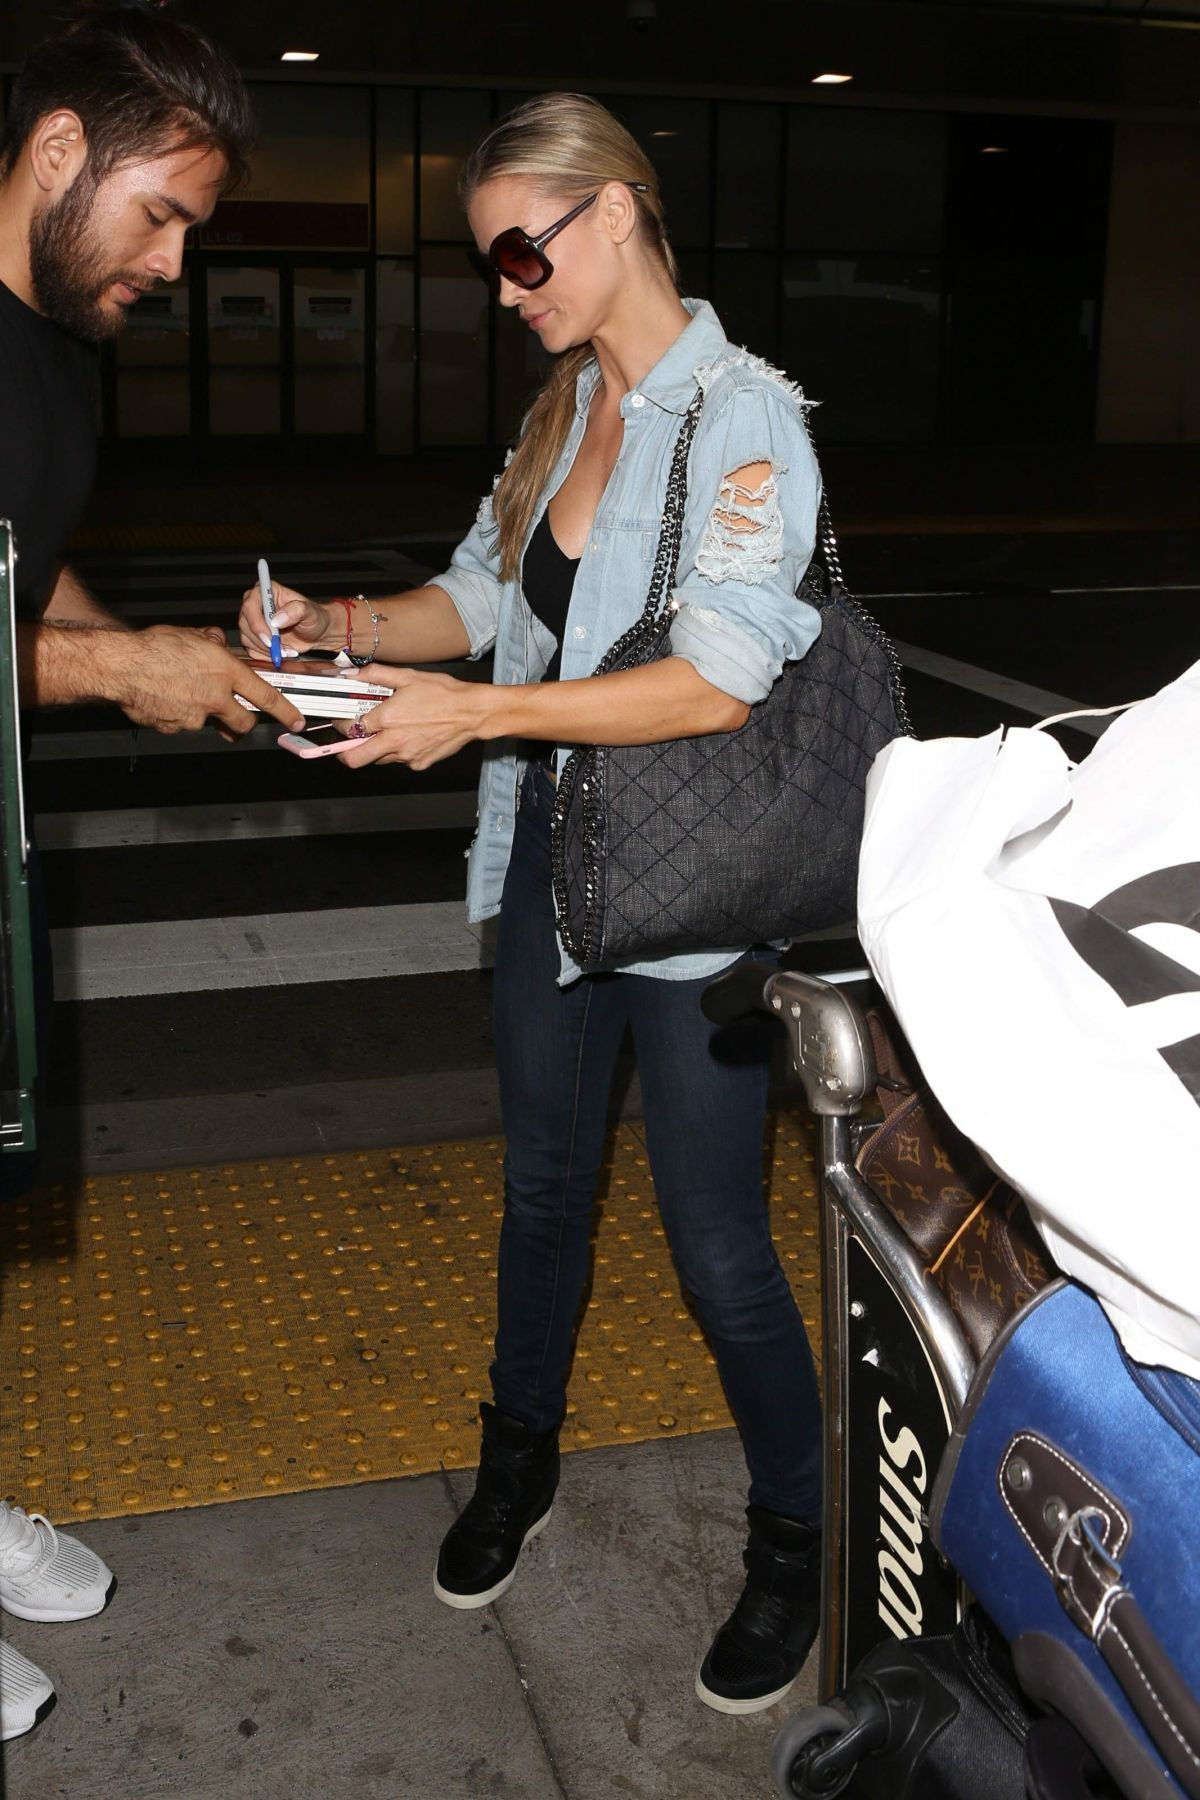 Joanna Krupa At LAX International Airport, Los Angeles   joanna-krupa-at-lax-international-airport-los-angeles_13